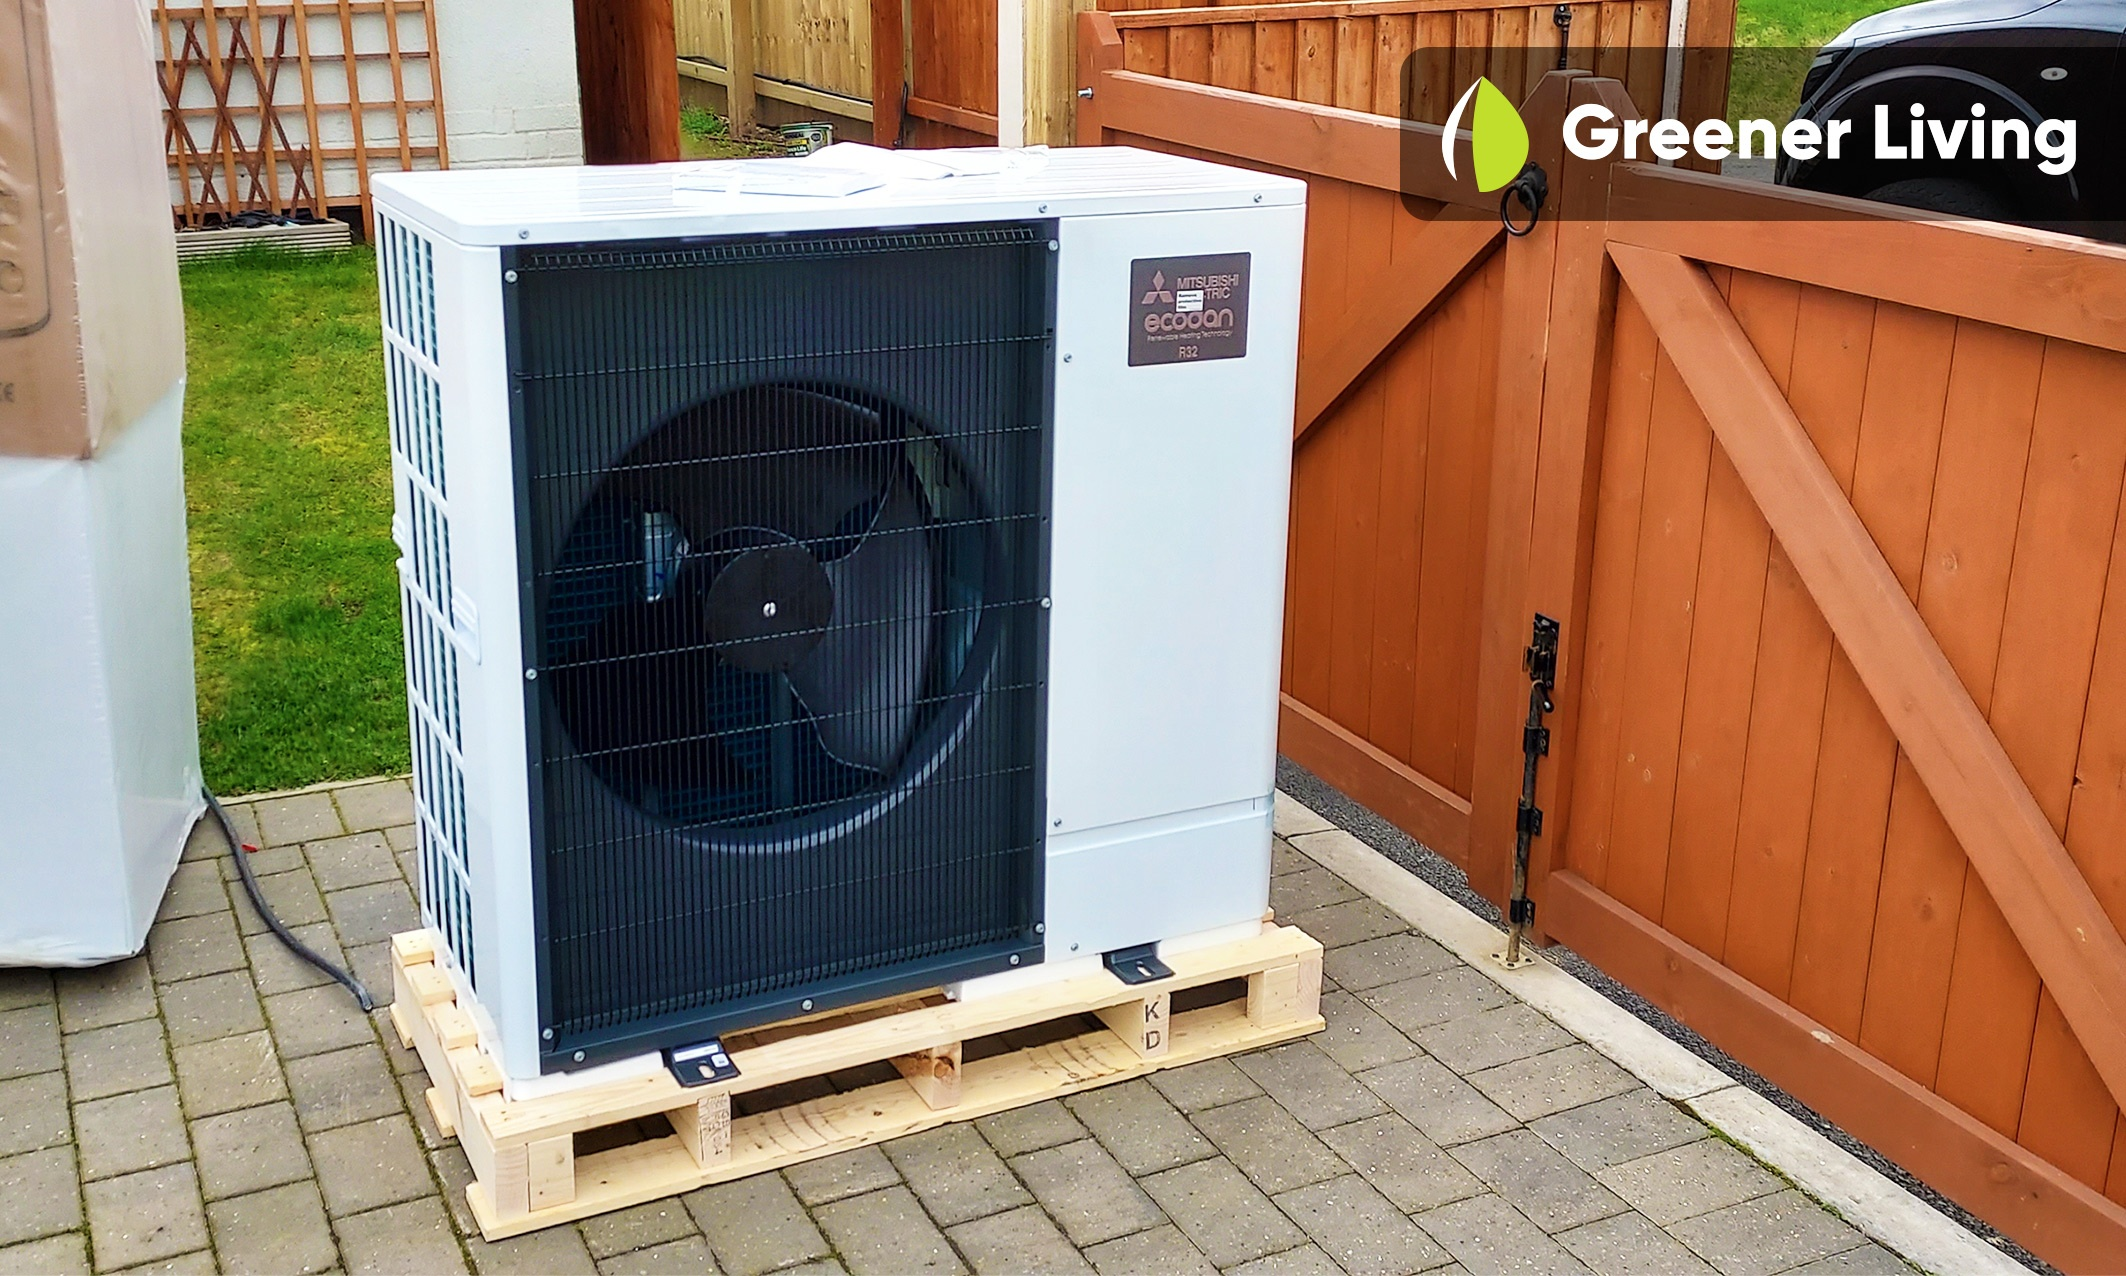 Air Source Heat Pump delivery